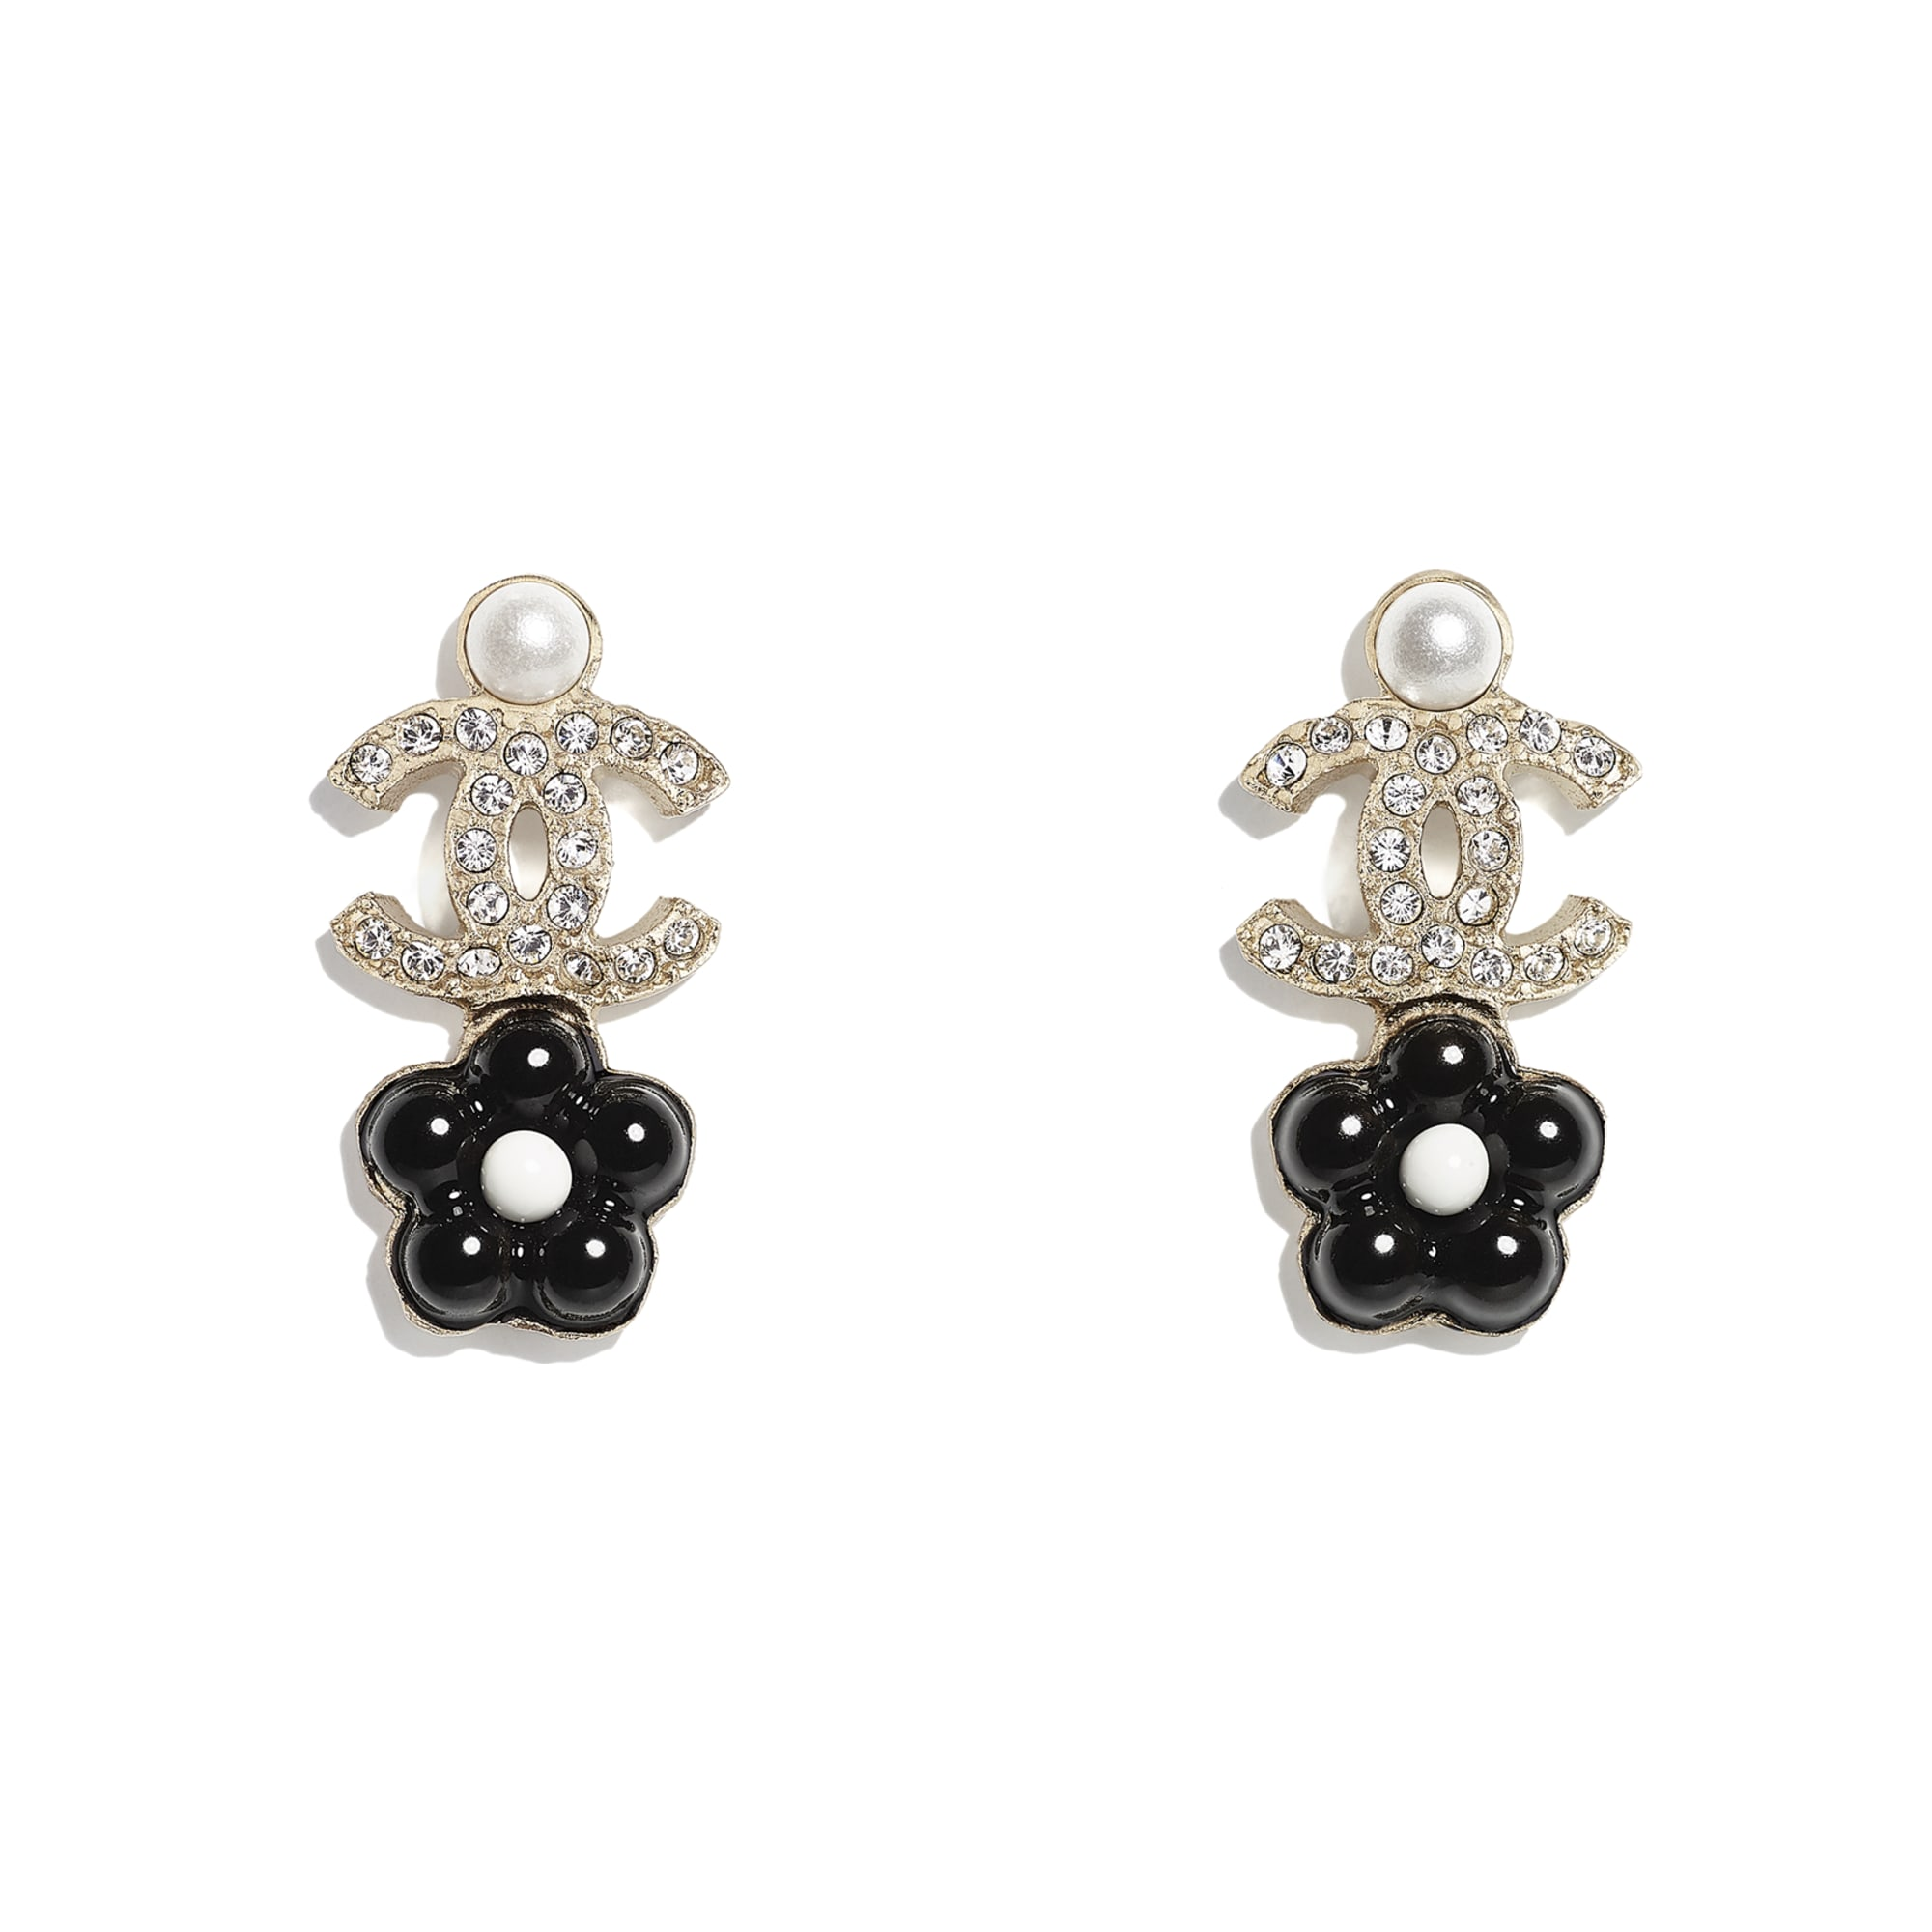 Earrings - Gold, Pearly White, Crystal & Black - Metal, Glass Pearls & Diamantés - CHANEL - Default view - see standard sized version